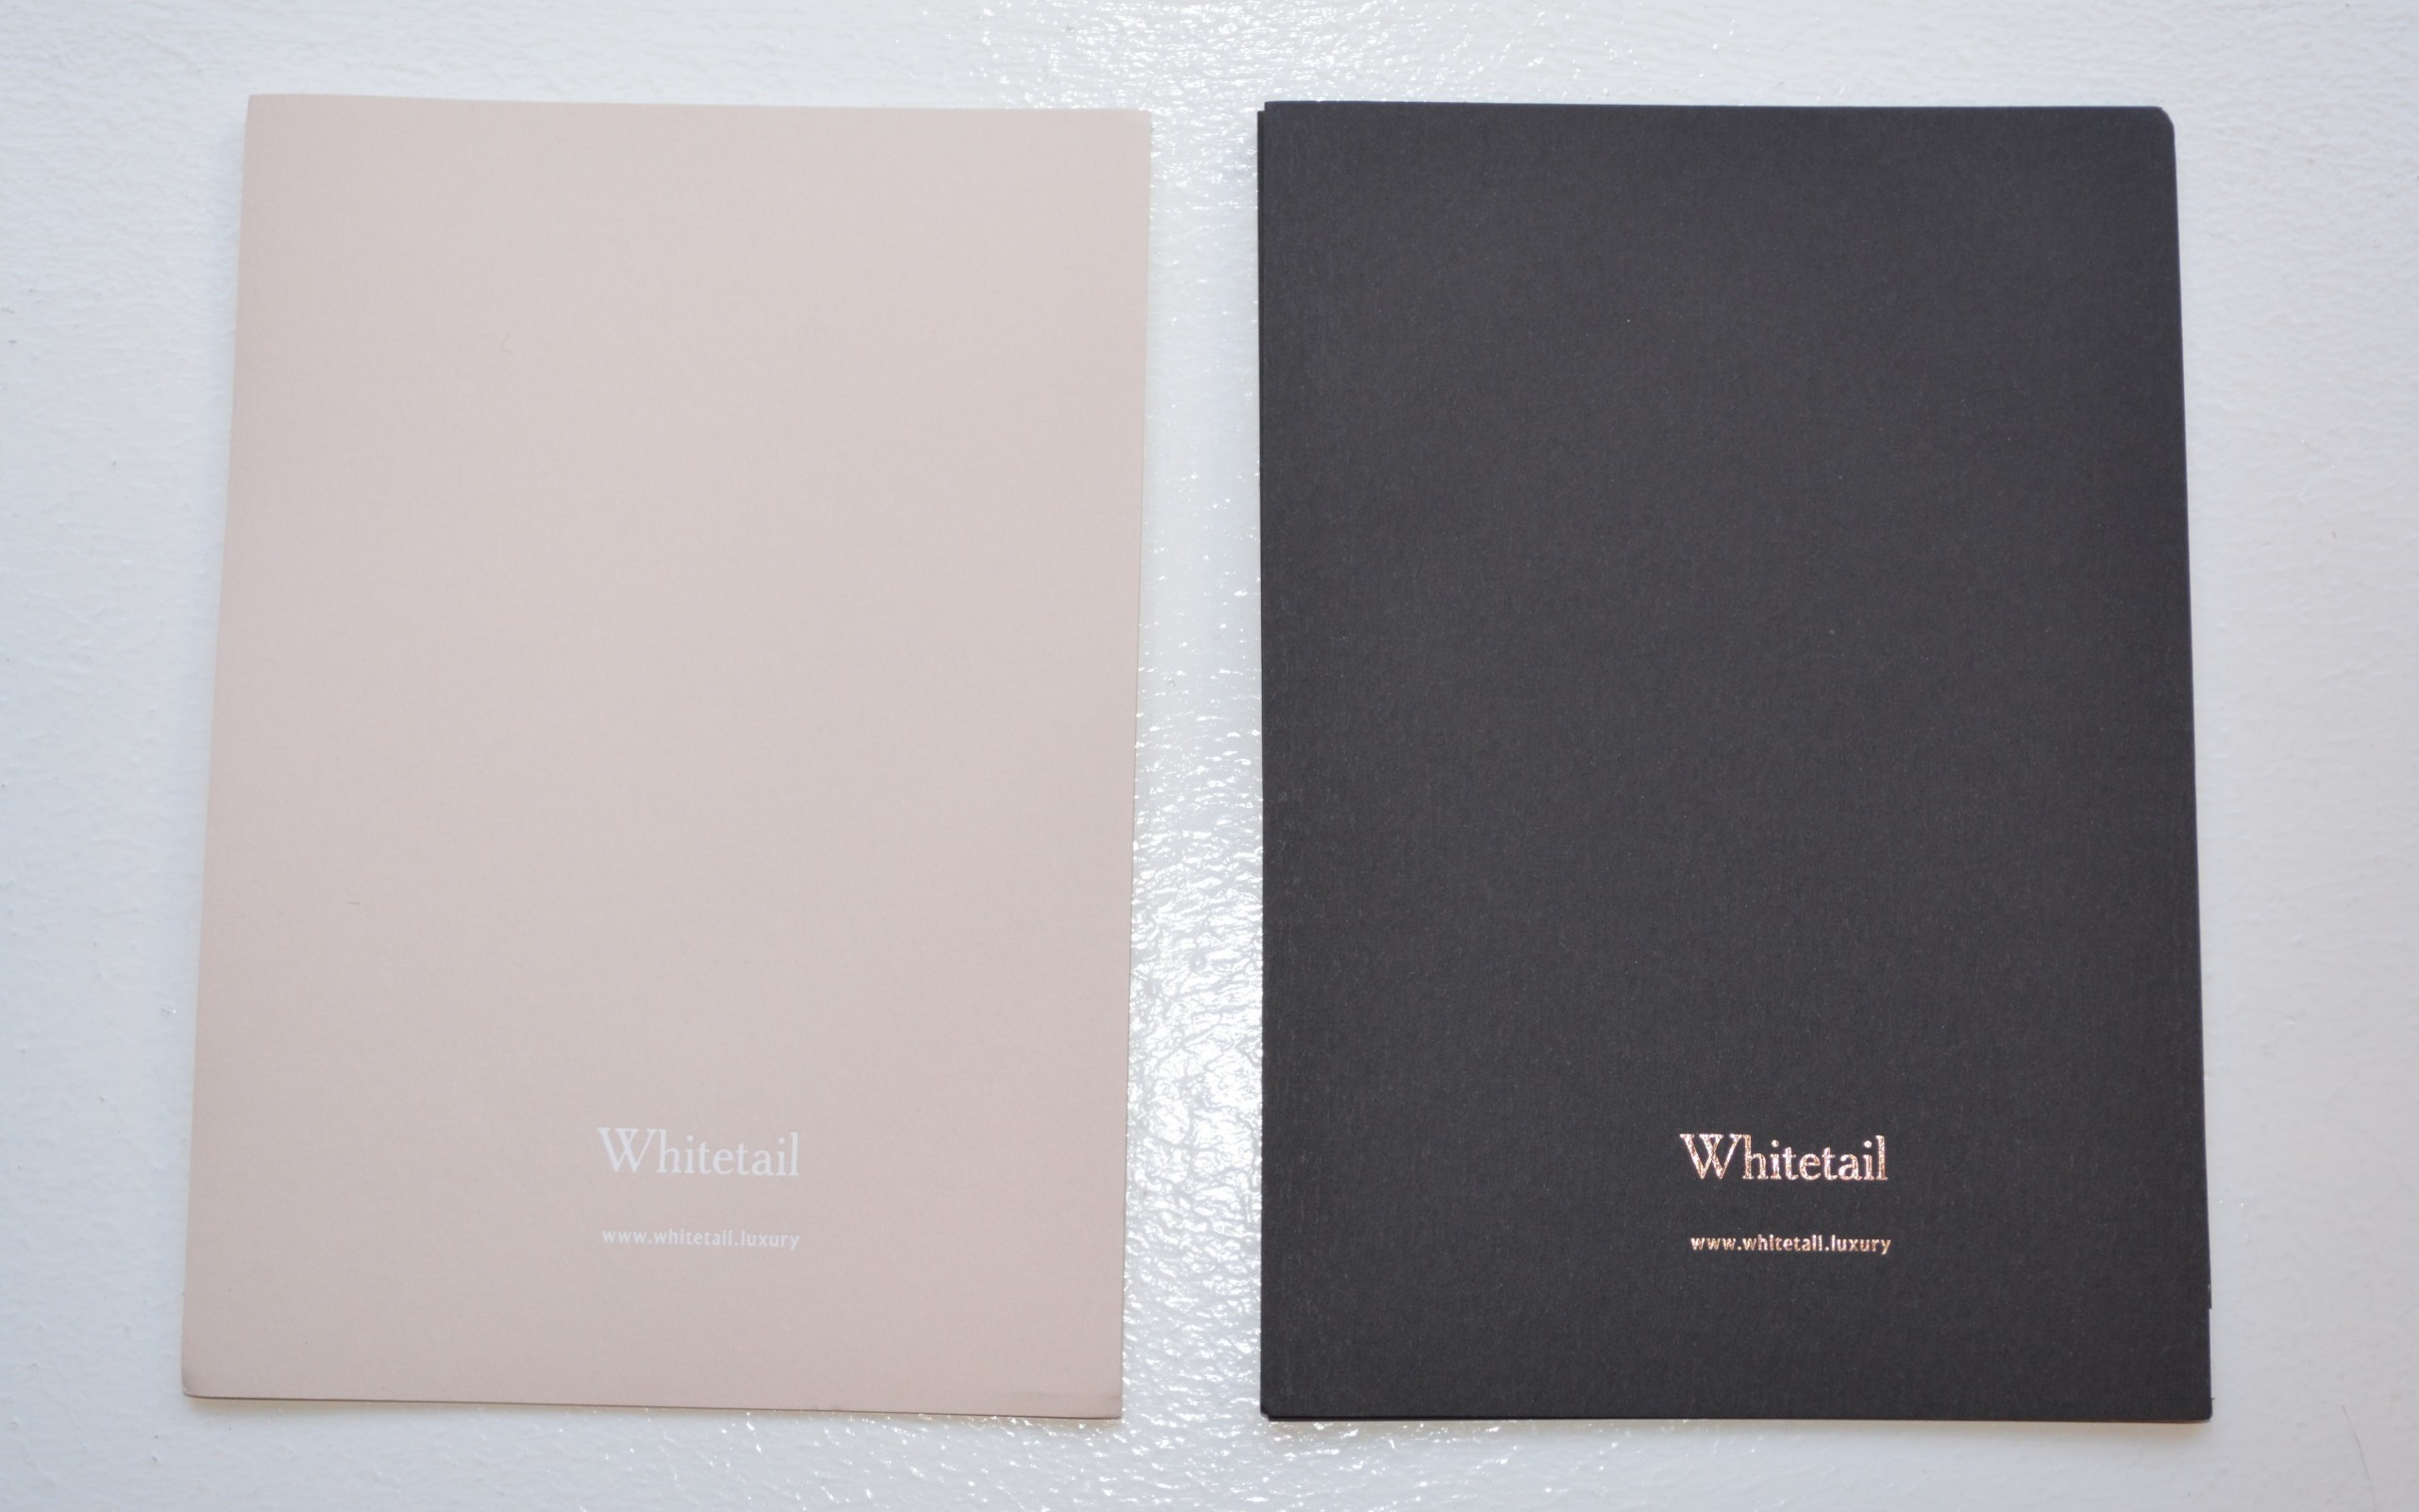 Whitetail showroom opening 13-14 March 2015 in Helsinki!